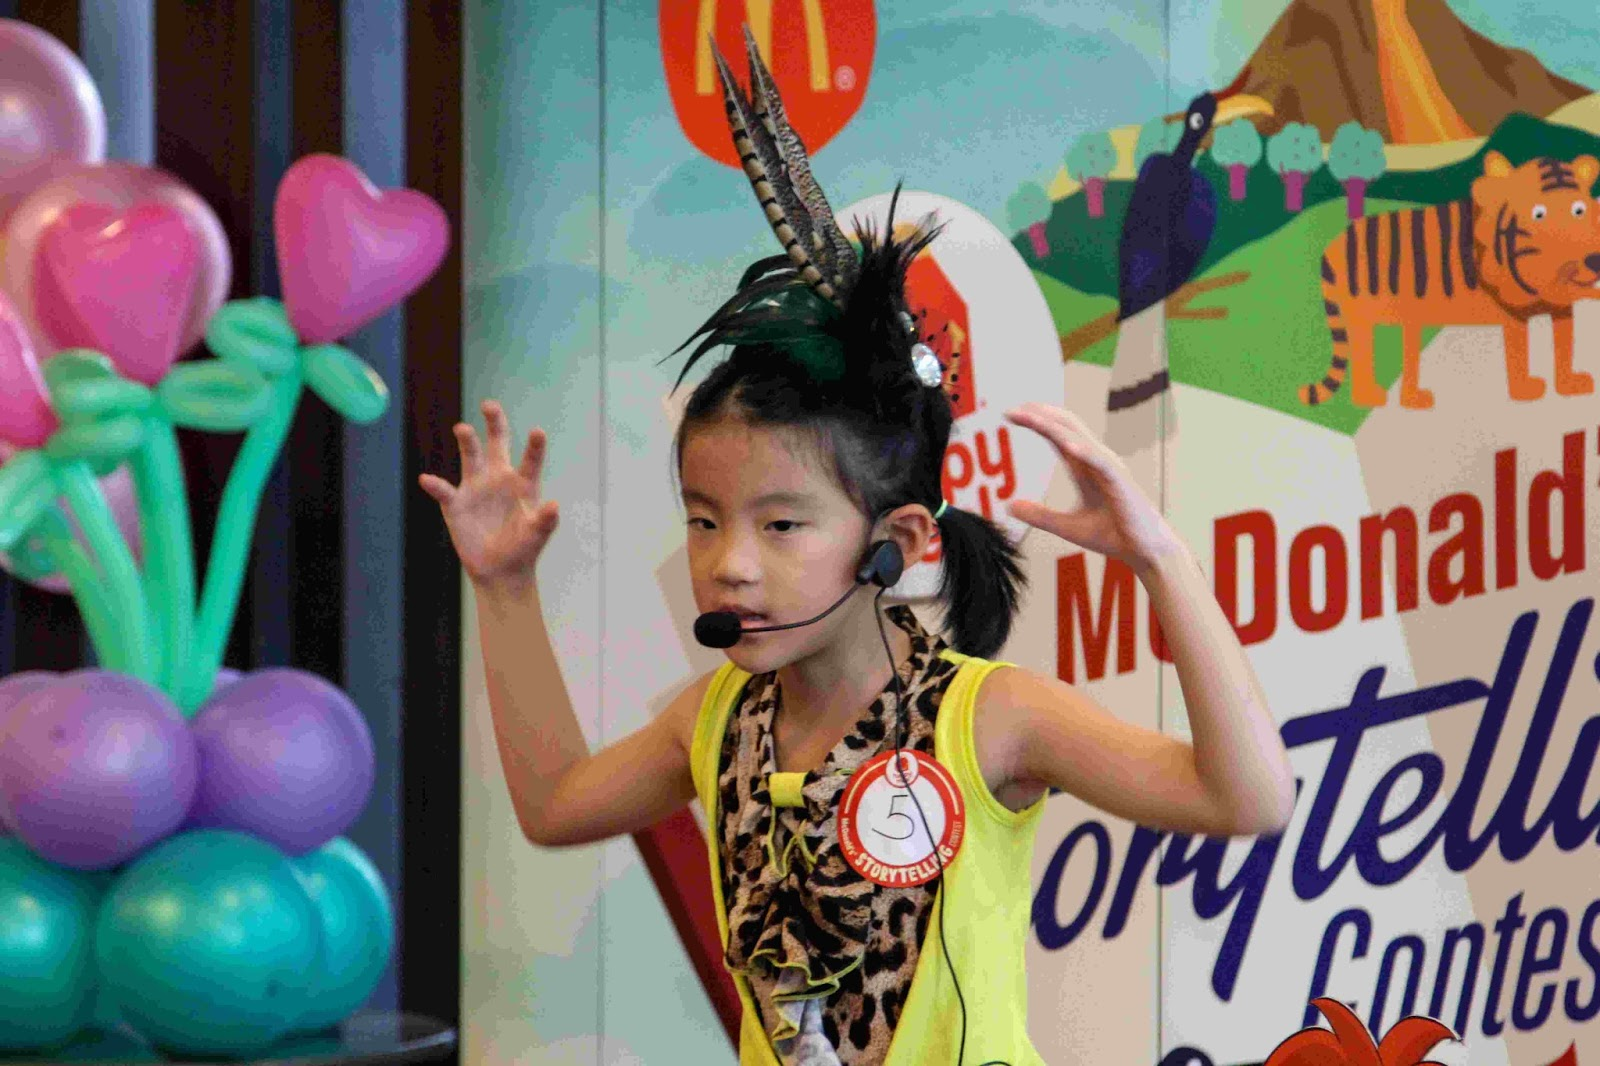 McDonald's Storytelling Contest Live Auditions Tour Now in